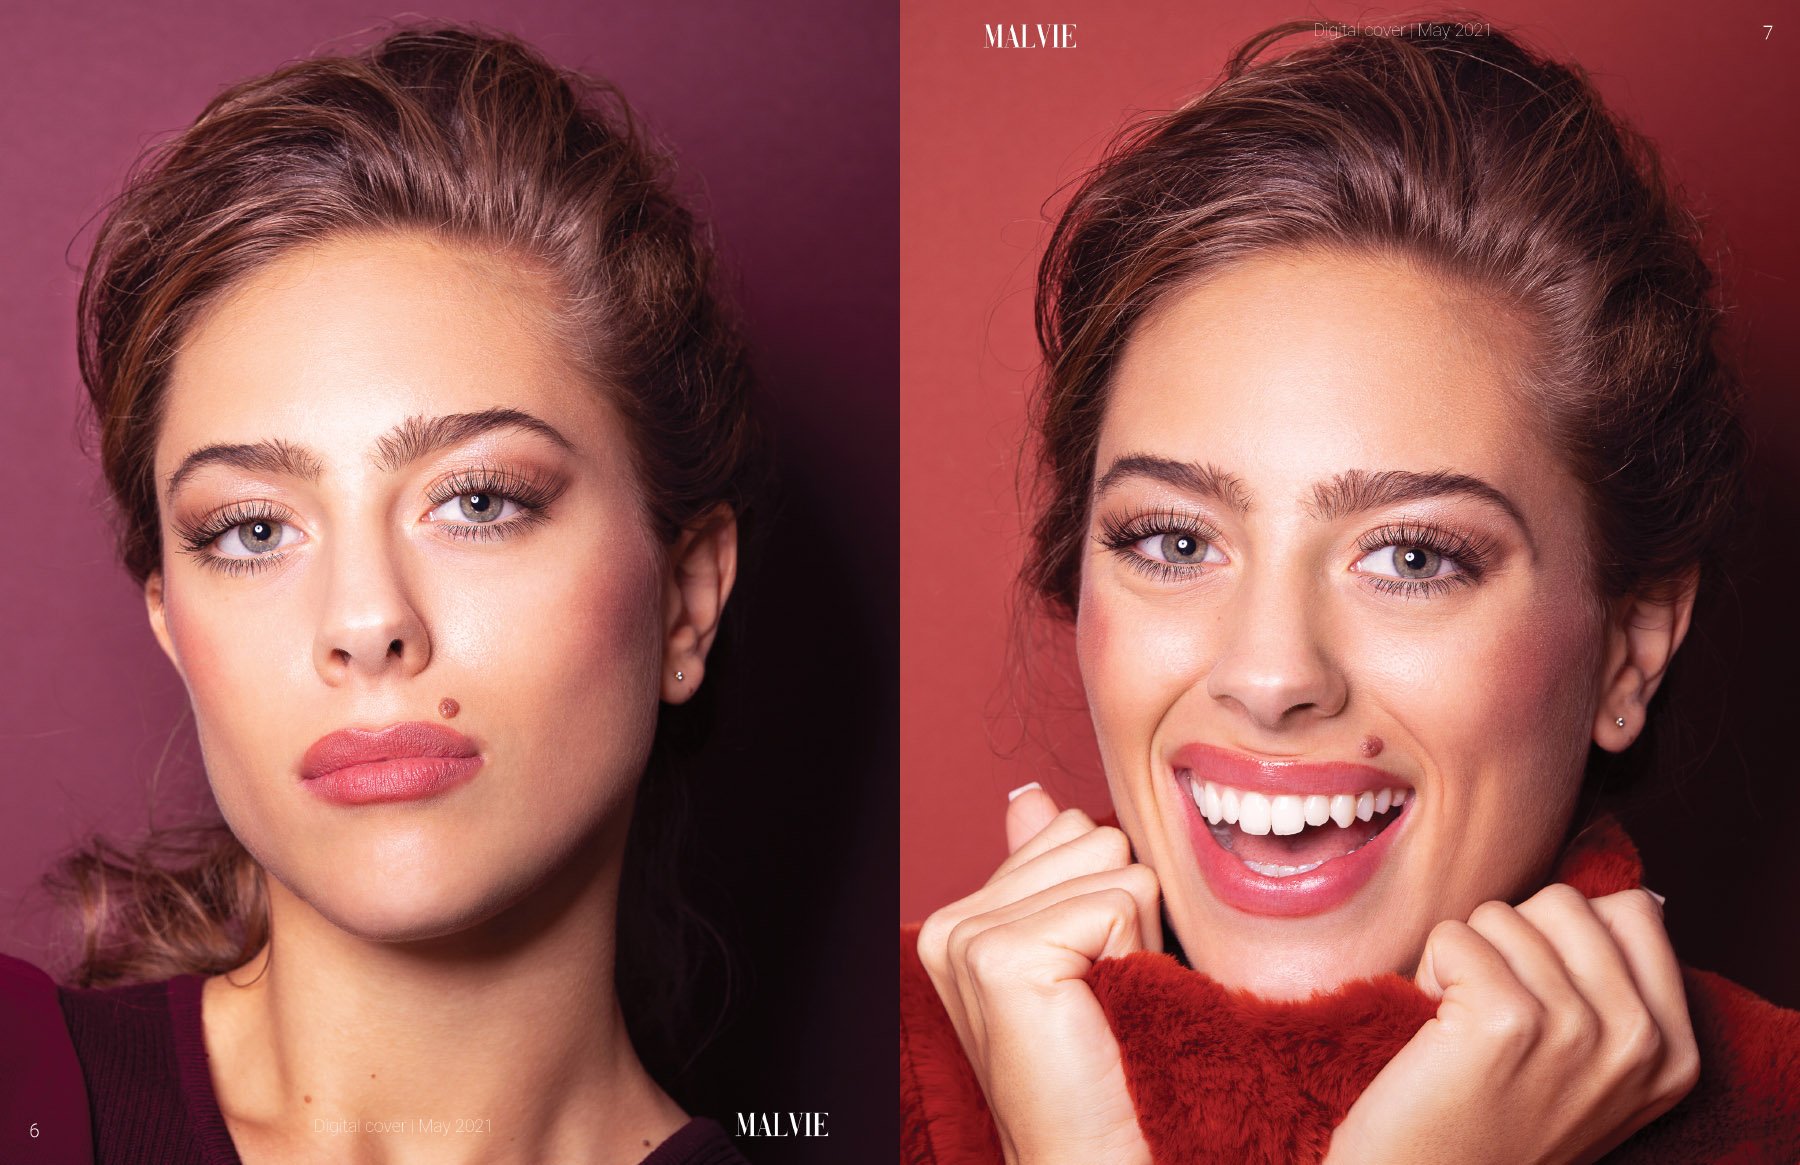 Beauty shoot with model Fleur Weidner published in MALVIE Magazine photographed by Loesje Kessels